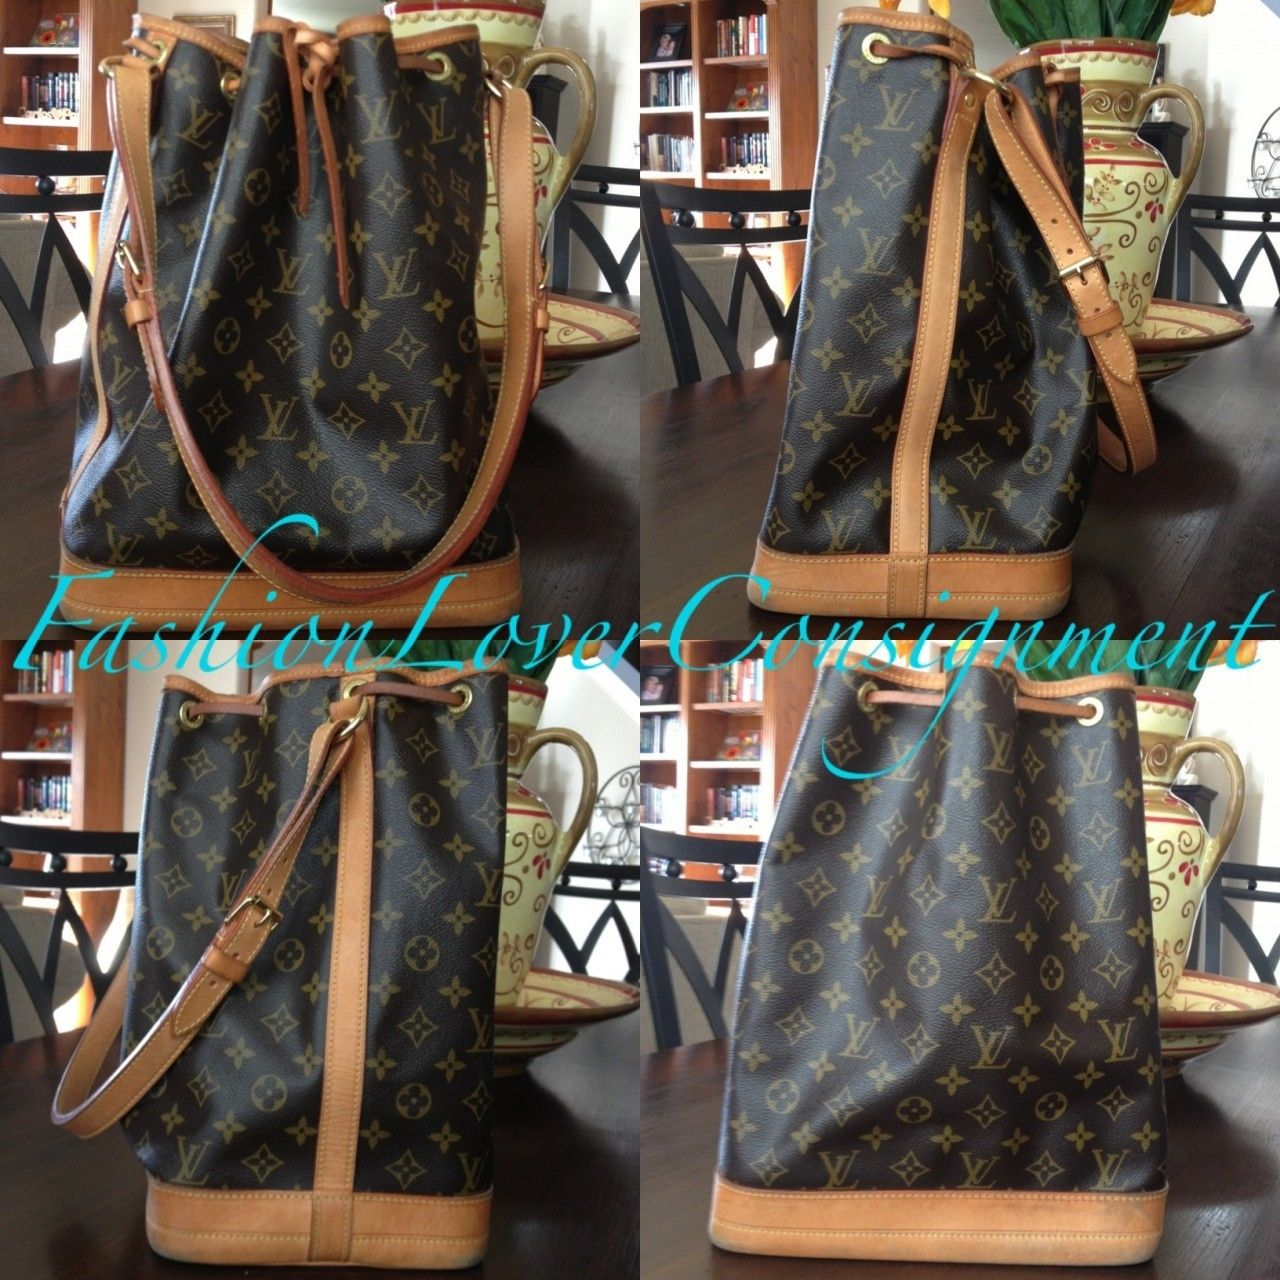 Authentic Louis Vuitton Handbags From Factory Outlet